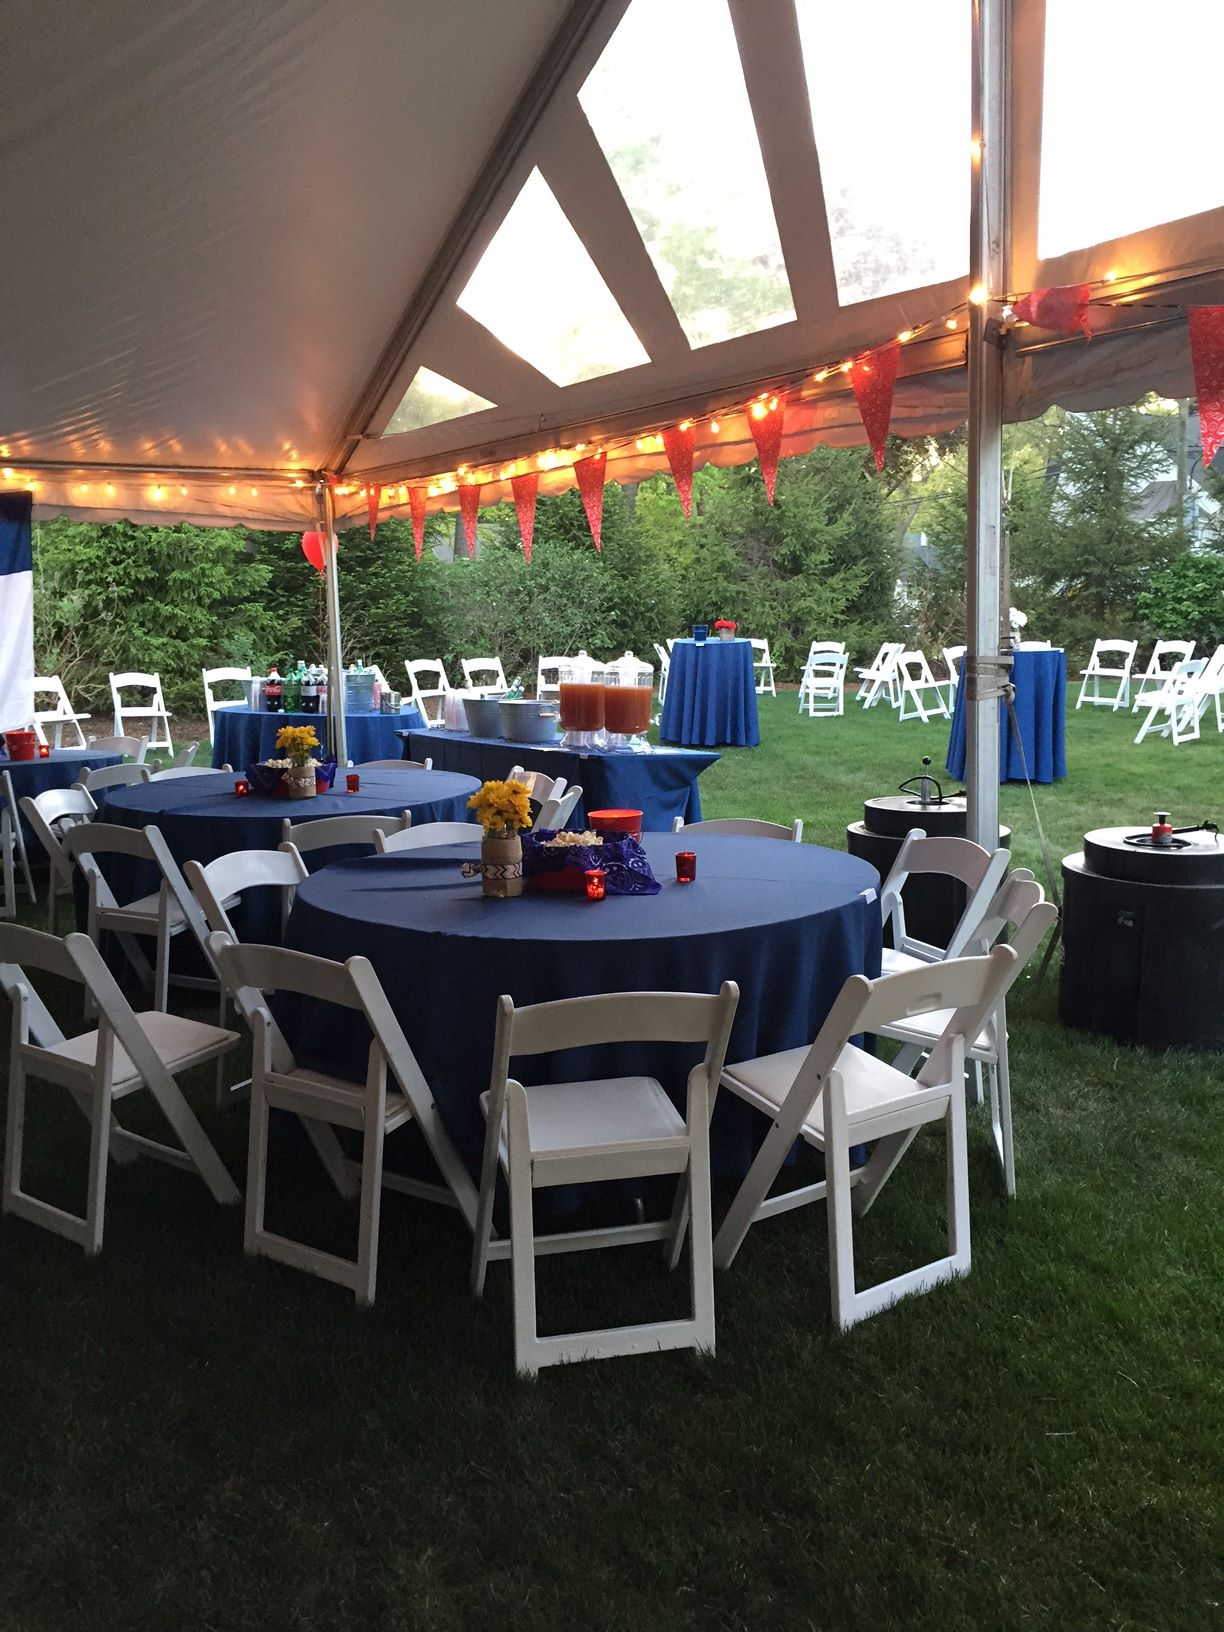 Blue and White table setup